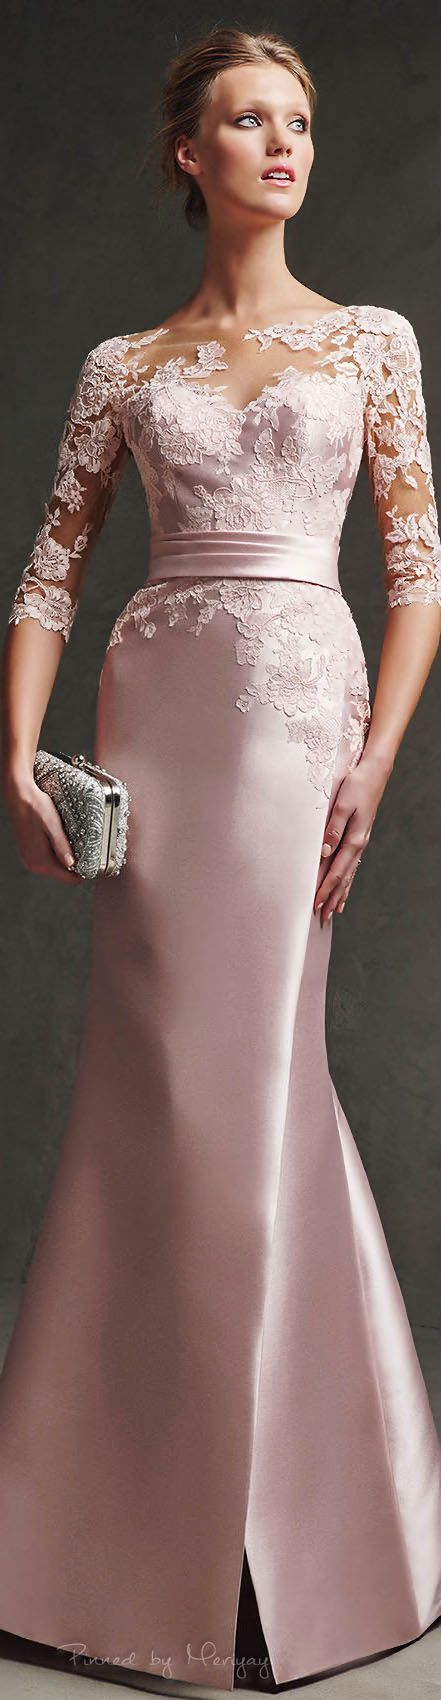 #motherofthebride - Lovely rose colored mother of the bride dress with sheer lace sleeves. The haute couture 3/4 sleeve evening gown can be made to order by our US dress design firm at an affordable cost. We specialize in replicas and inexpensive custom formal gowns. Contact us for pricing of custom mother-of-the-bride evening dresses. www.dariuscordell... we provide all kinds of wedding dresses,prom dresses,special dresses and bridesmaid dress